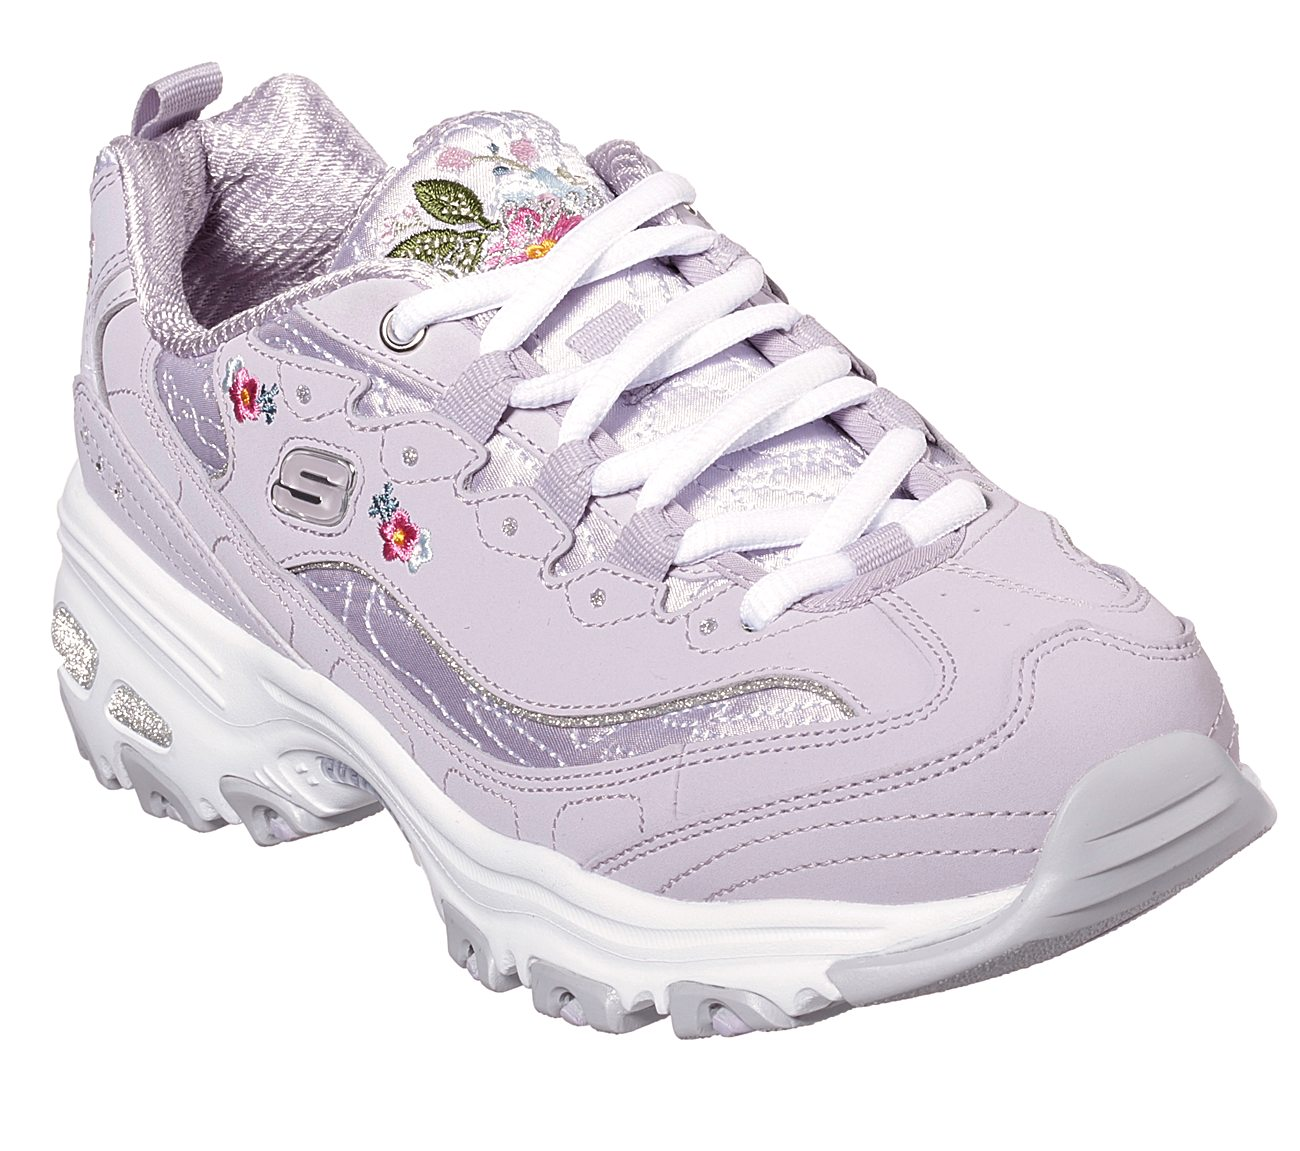 59ea4906786 Buy SKECHERS D Lites - Bright Blossoms Skechers D Lites Shoes only ...